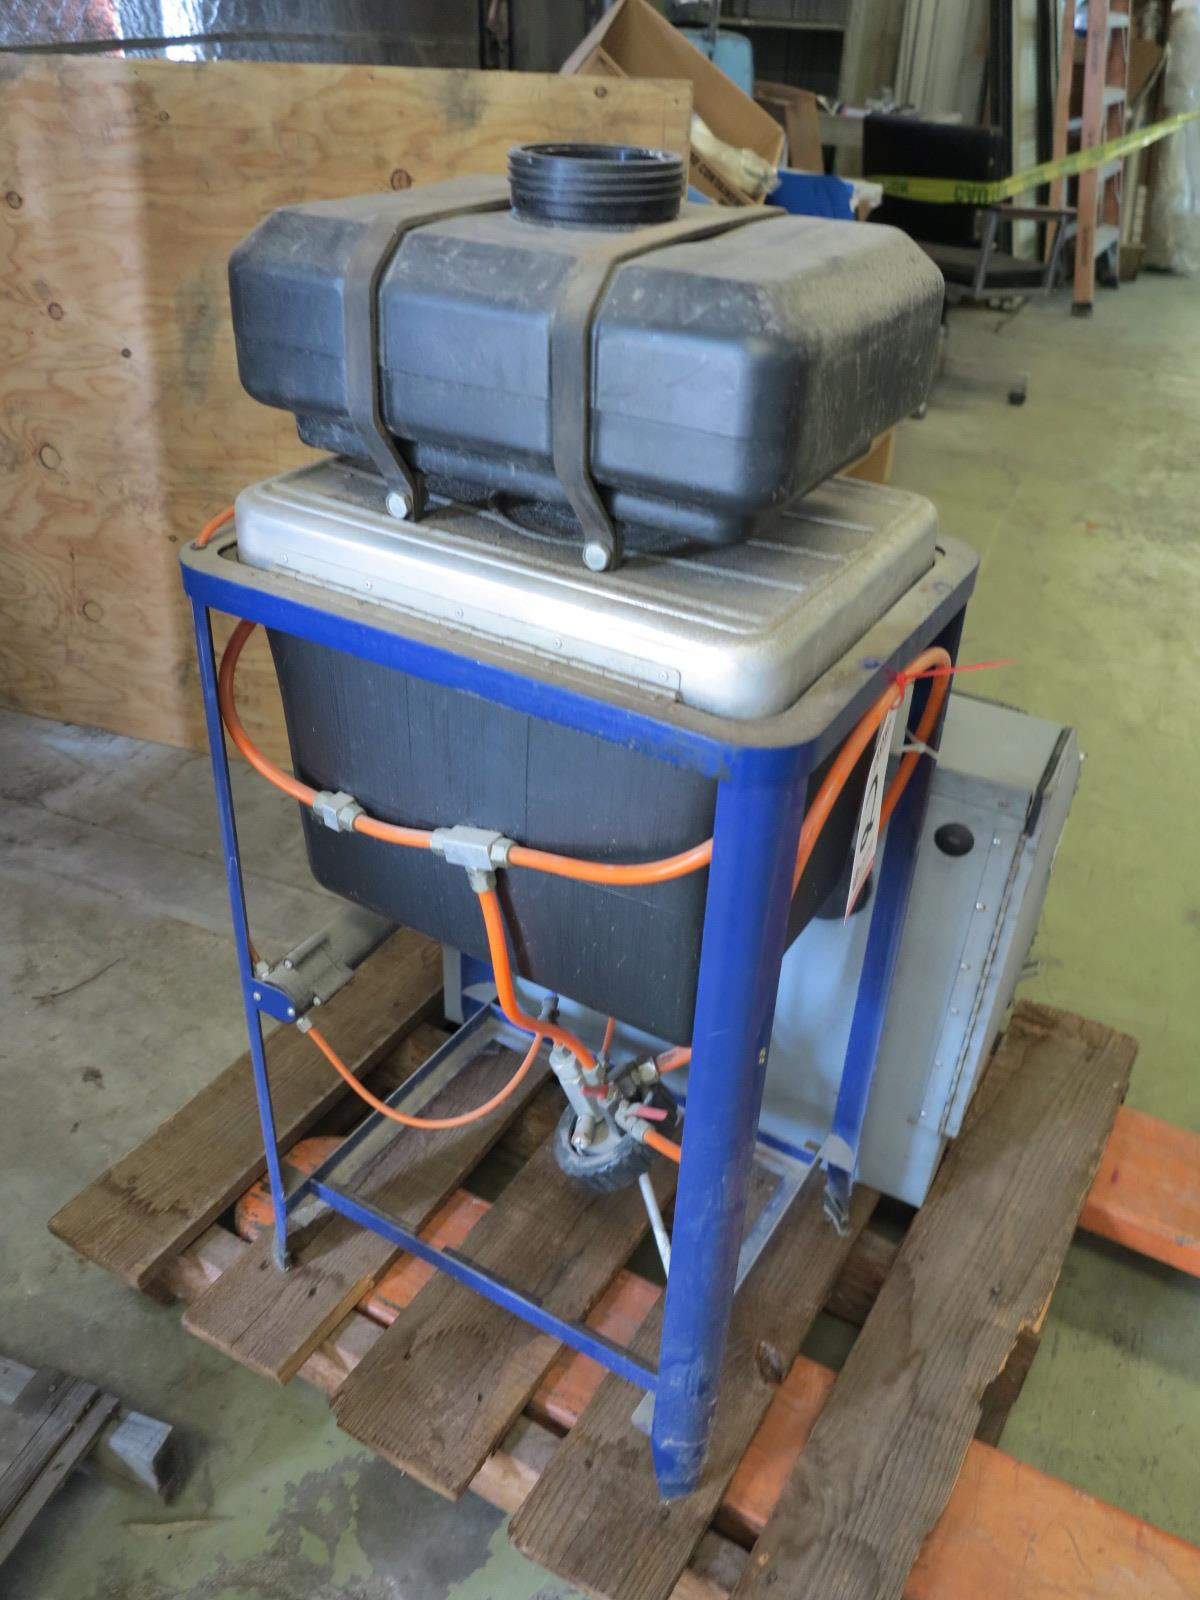 Lot 2 - LOT - (1) PAINT GUN WASHER AND (1) MEDIA BLAST CABINET